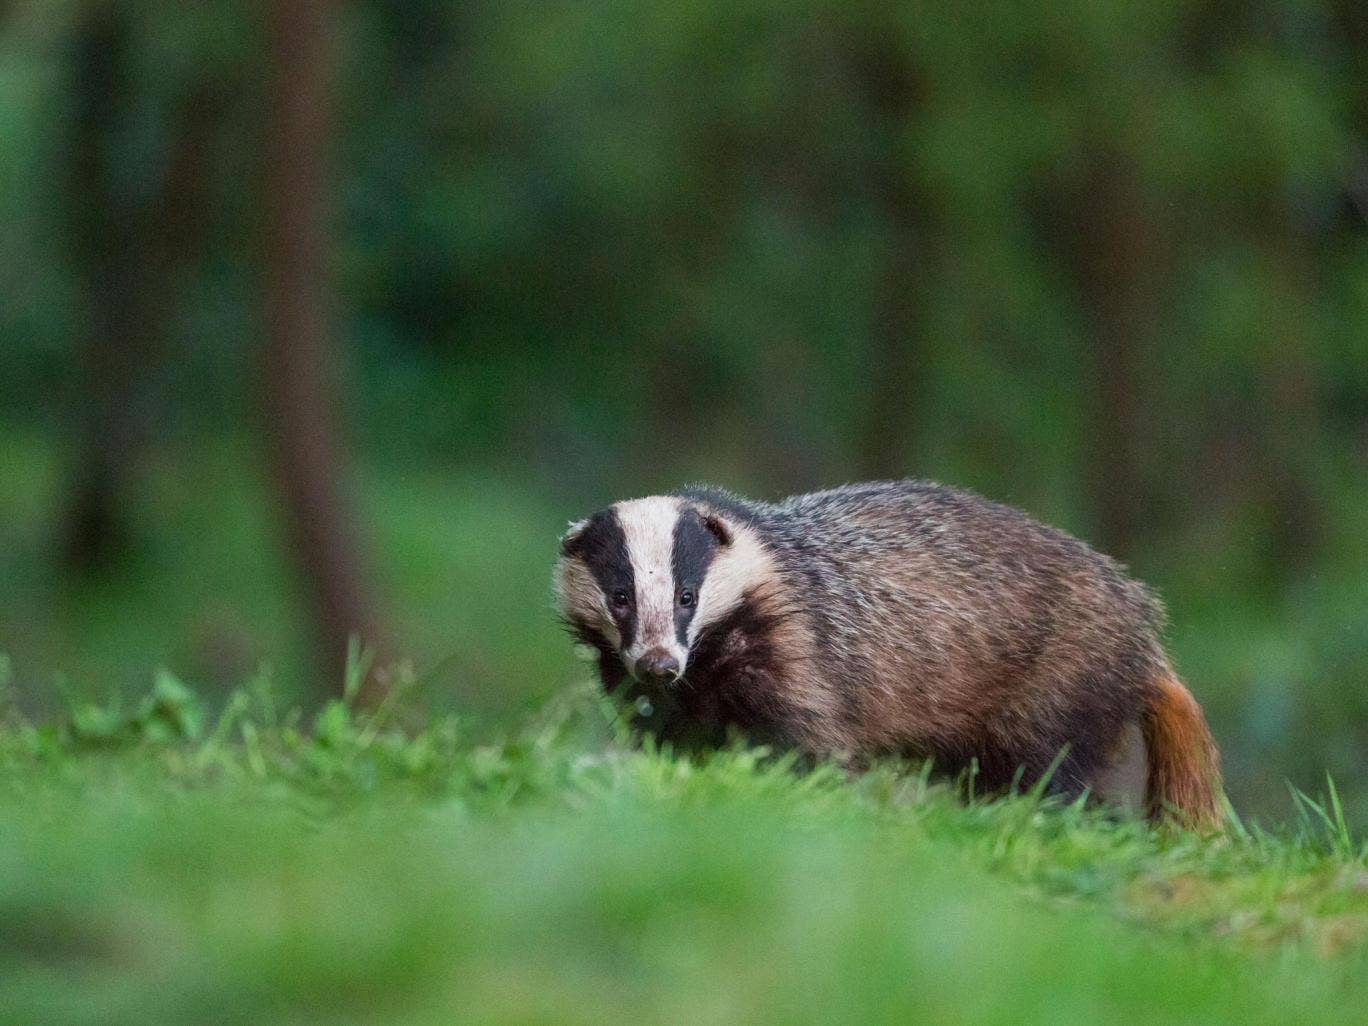 The government has a colony of 101 badgers